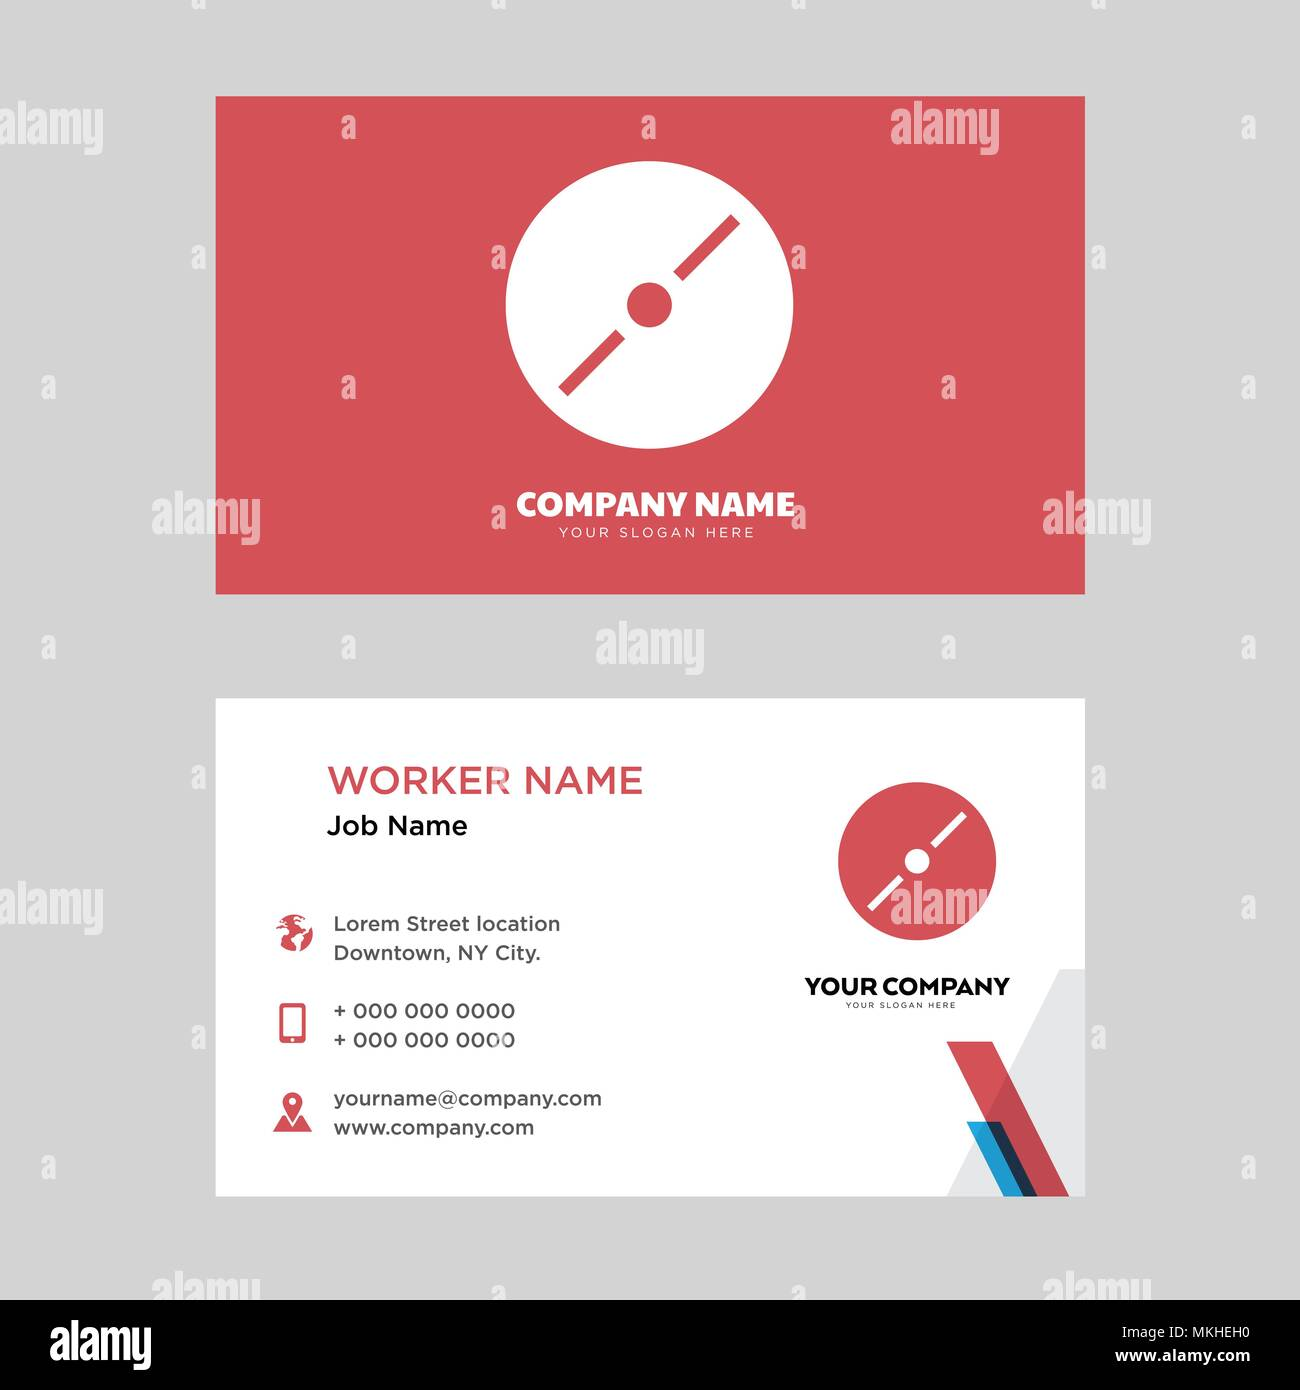 Disc business card design template, Visiting for your company ...